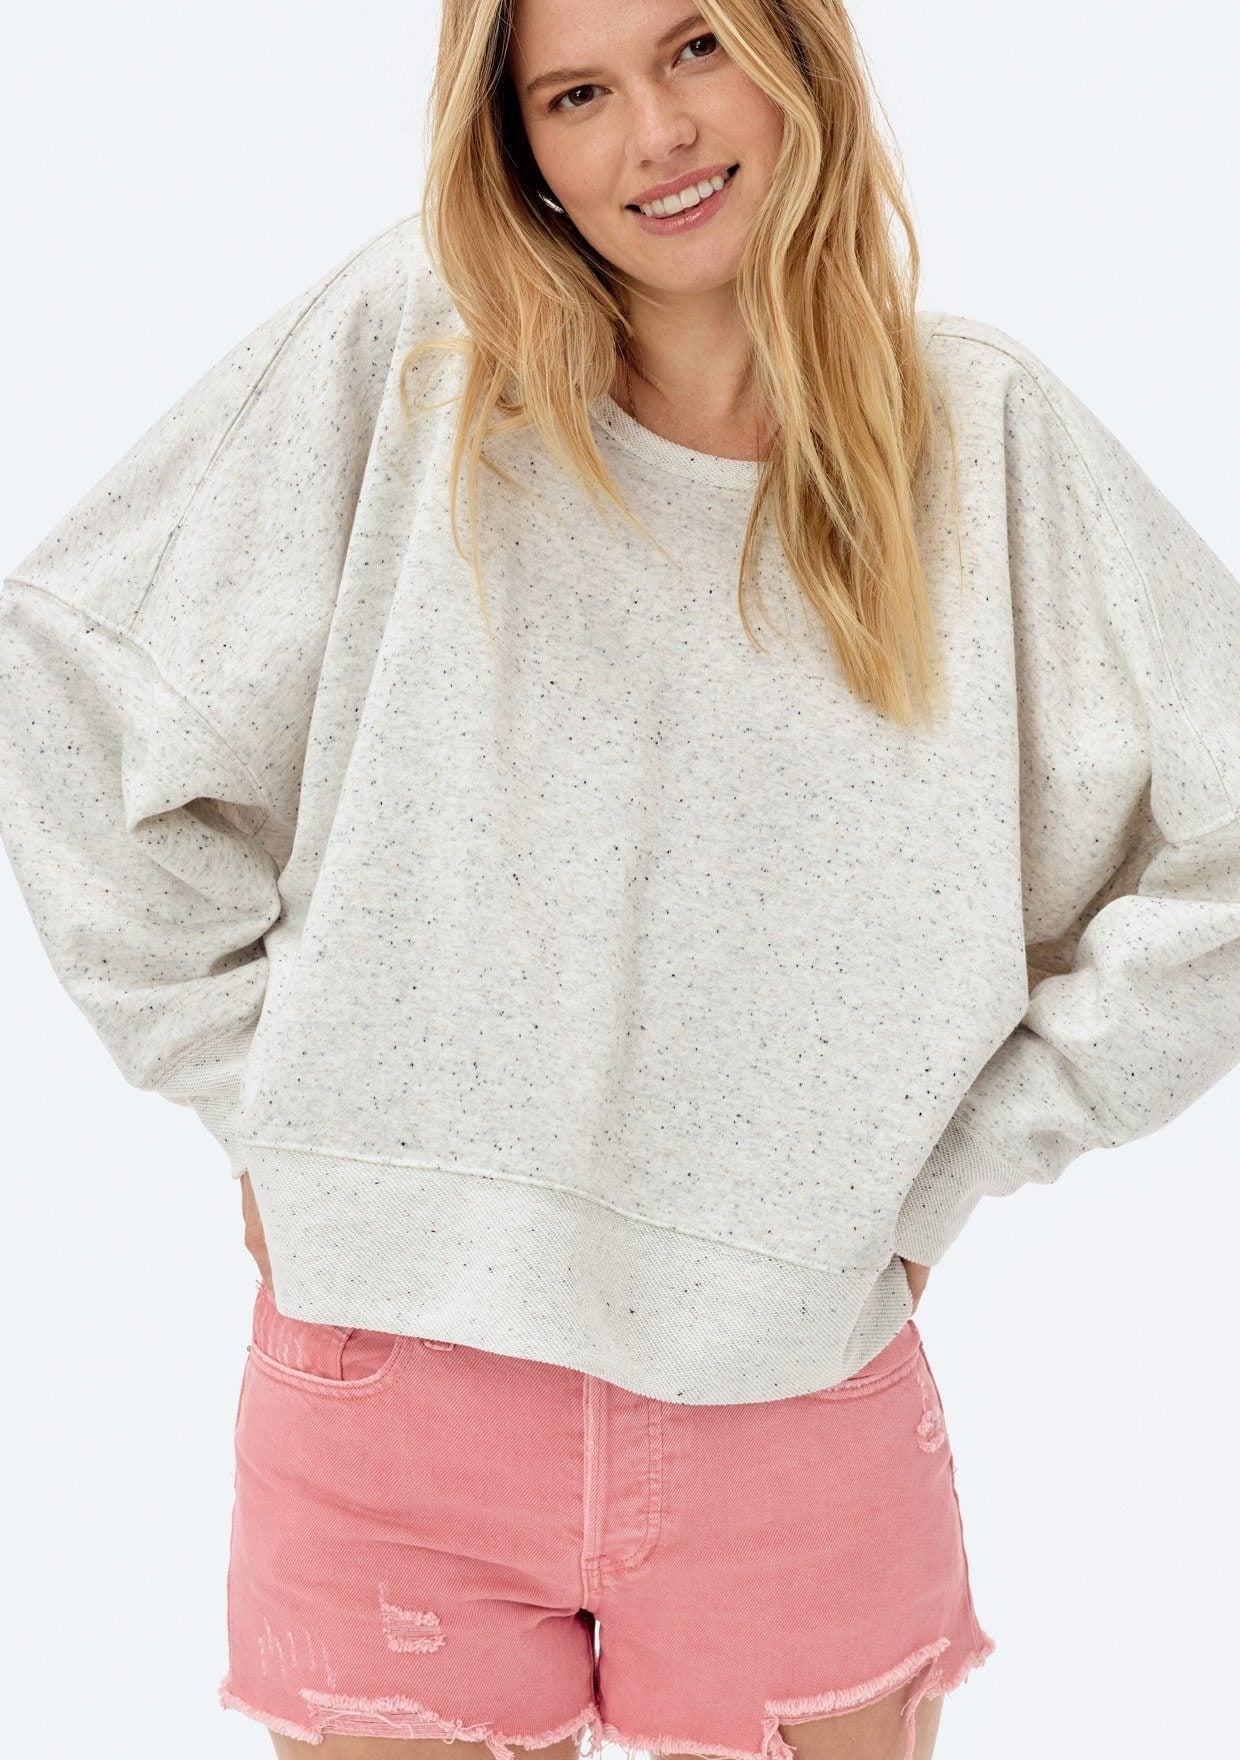 [Color: Light Heather Grey Confetti] Lovestitch light heather grey, relaxed-fit pullover, in a subtle multicolor, frenchterry cotton blend!